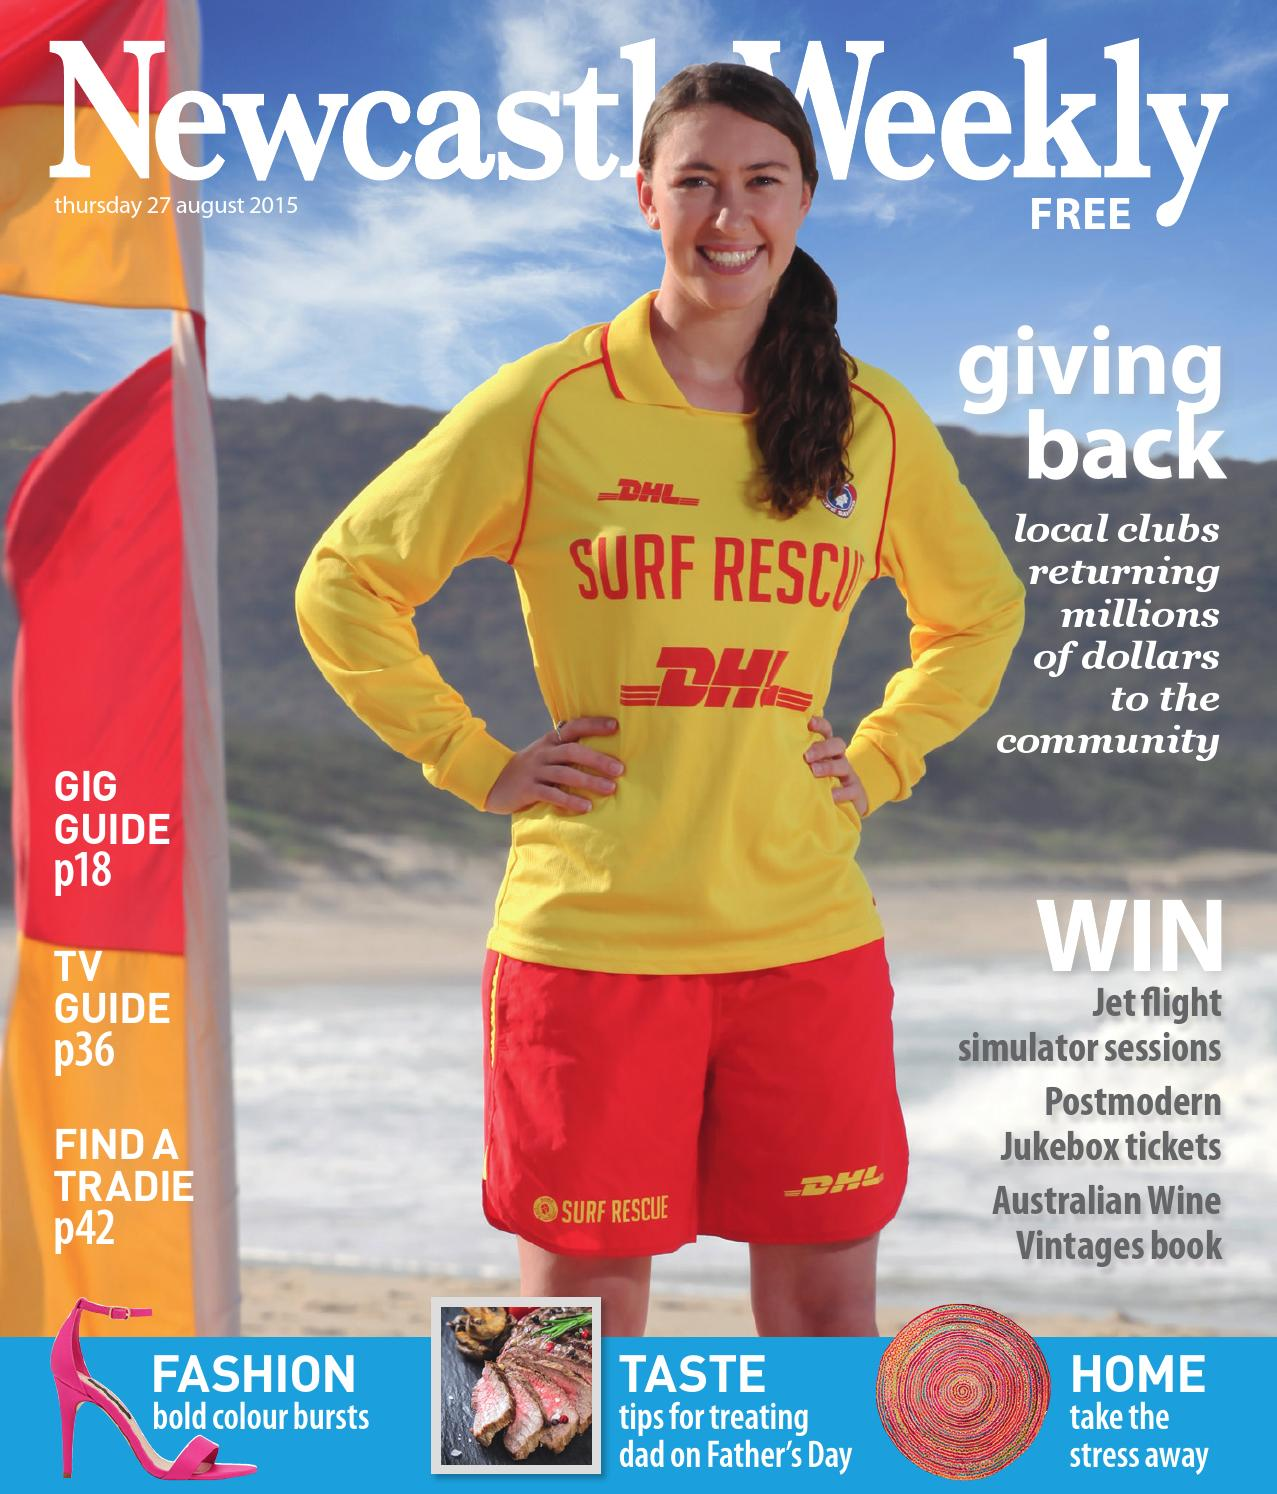 a75d67fee611fd 27 August 2015 - Newcastle Weekly Magazine by Newcastle Weekly Magazine -  issuu